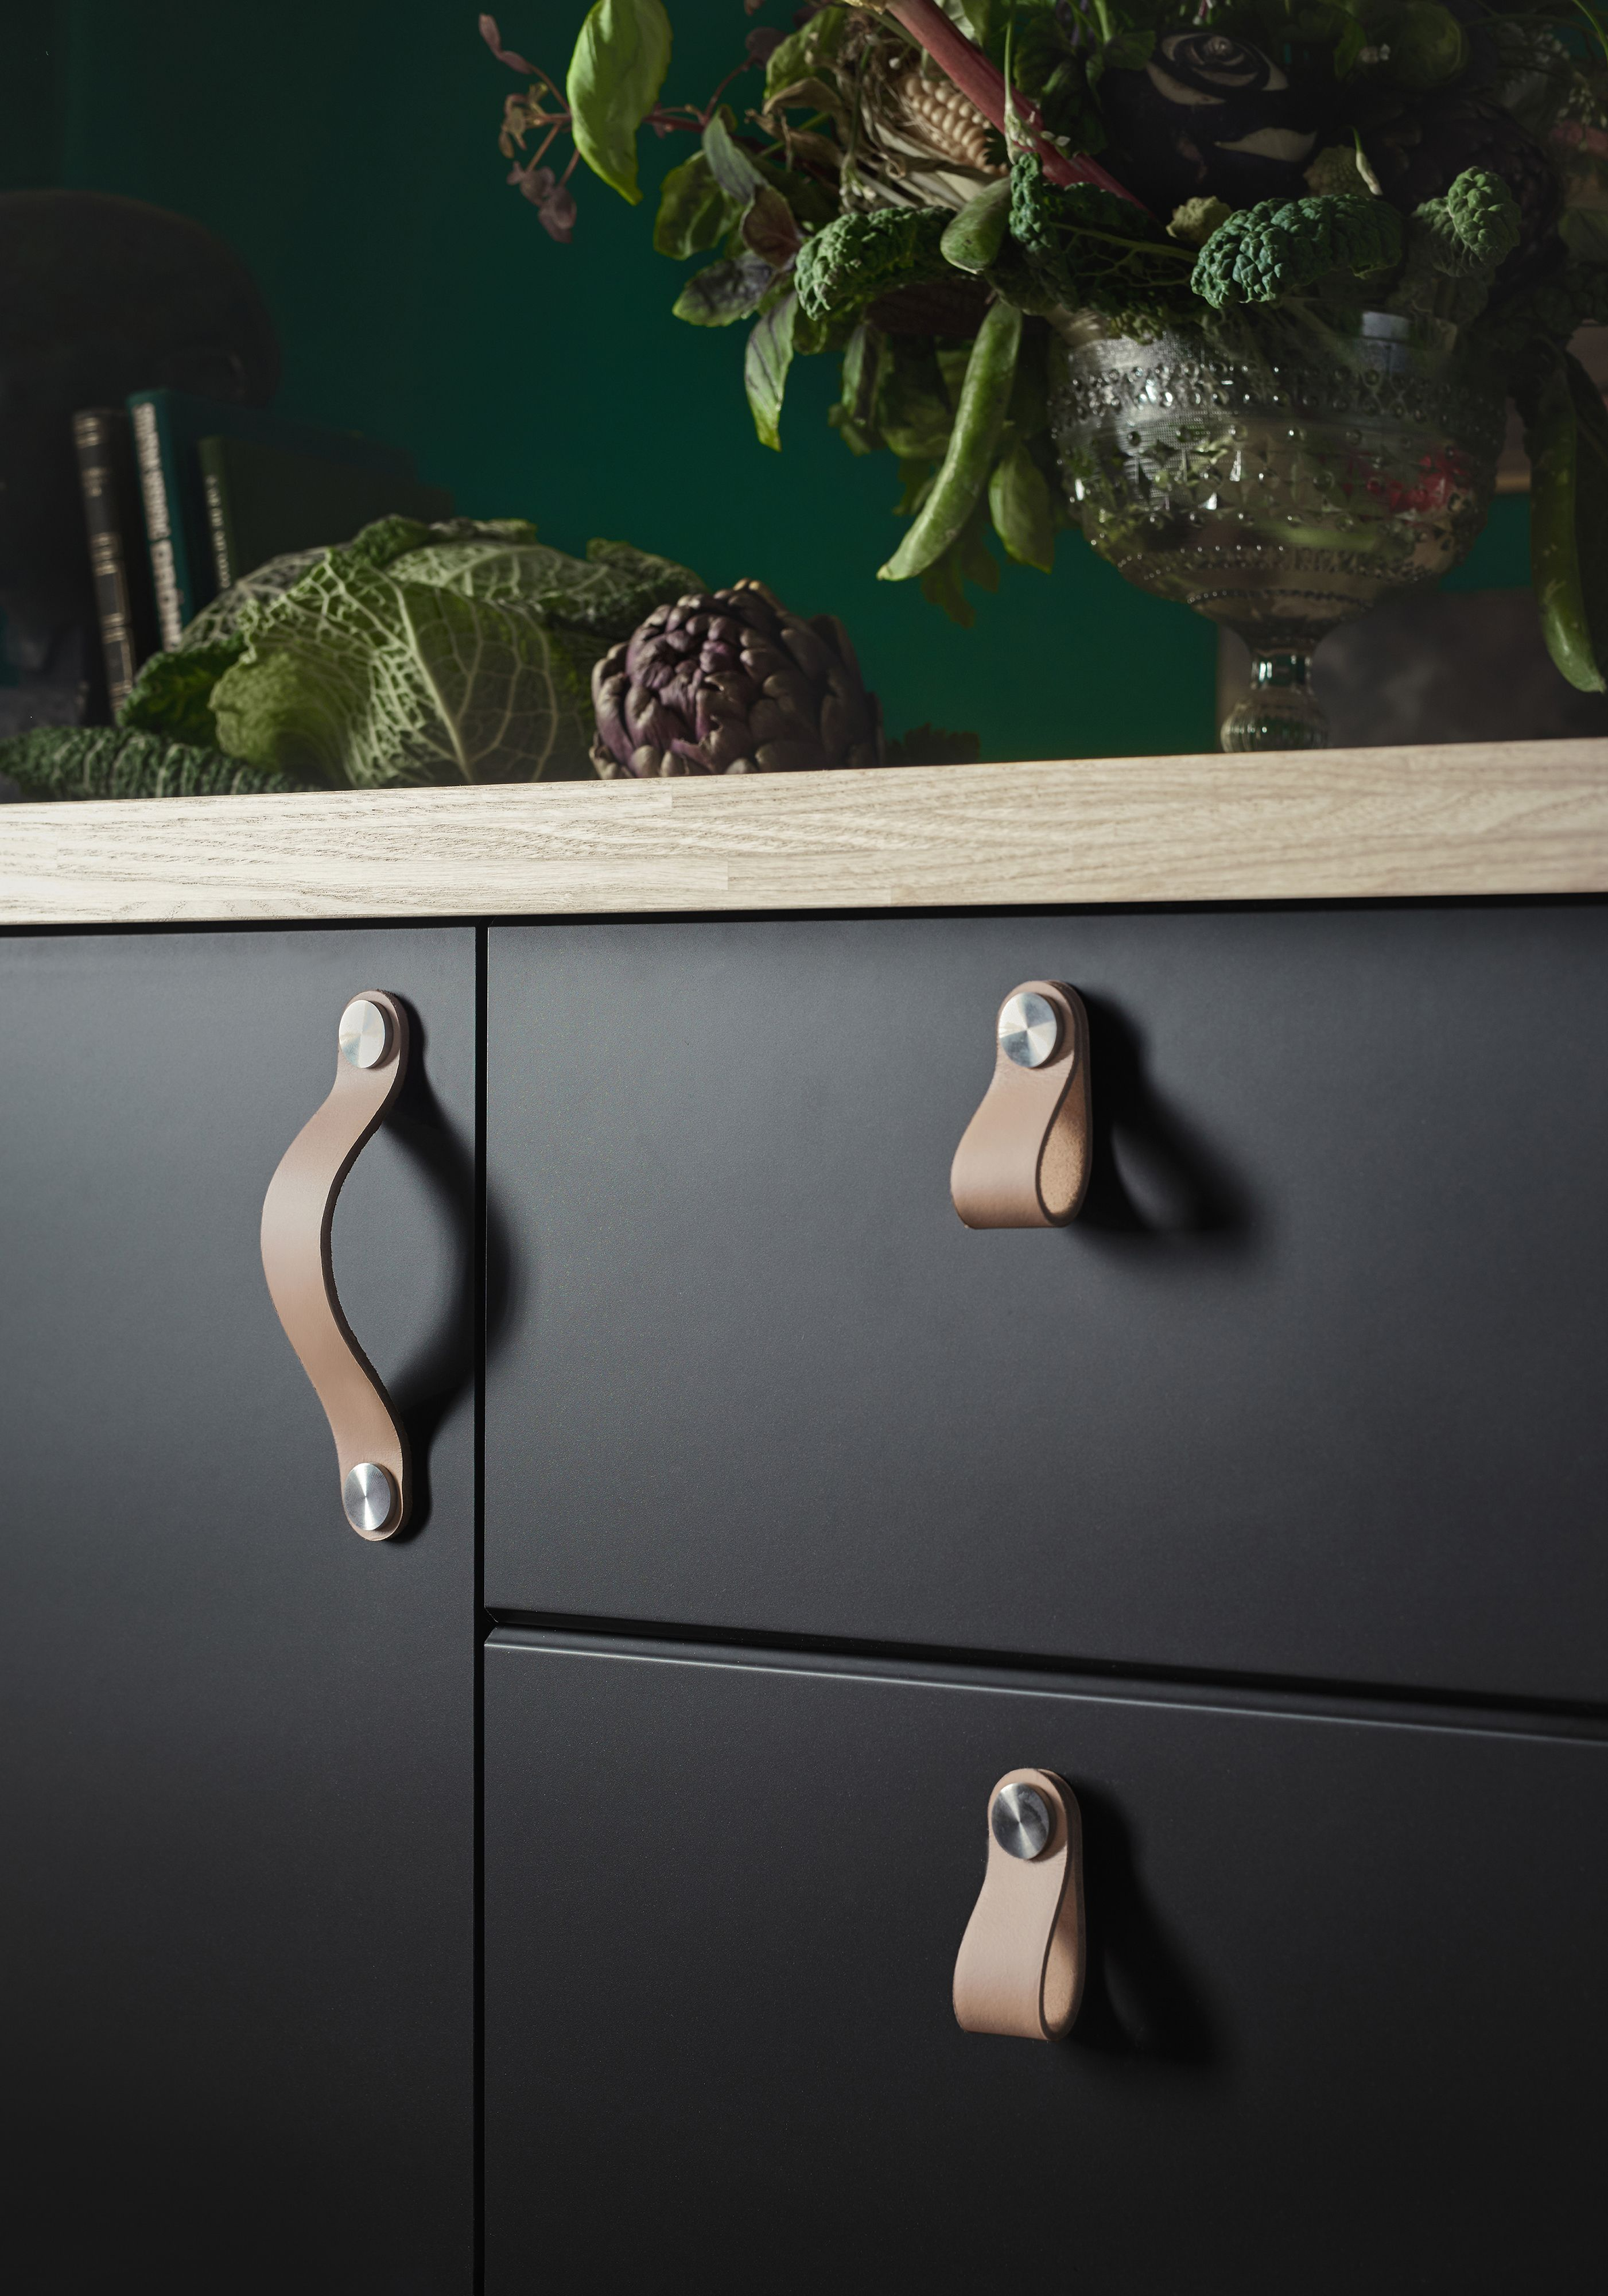 Ikea Küche Schwarz Gelb First Look At Ikea S New Products Spoiler They Re Great Haus